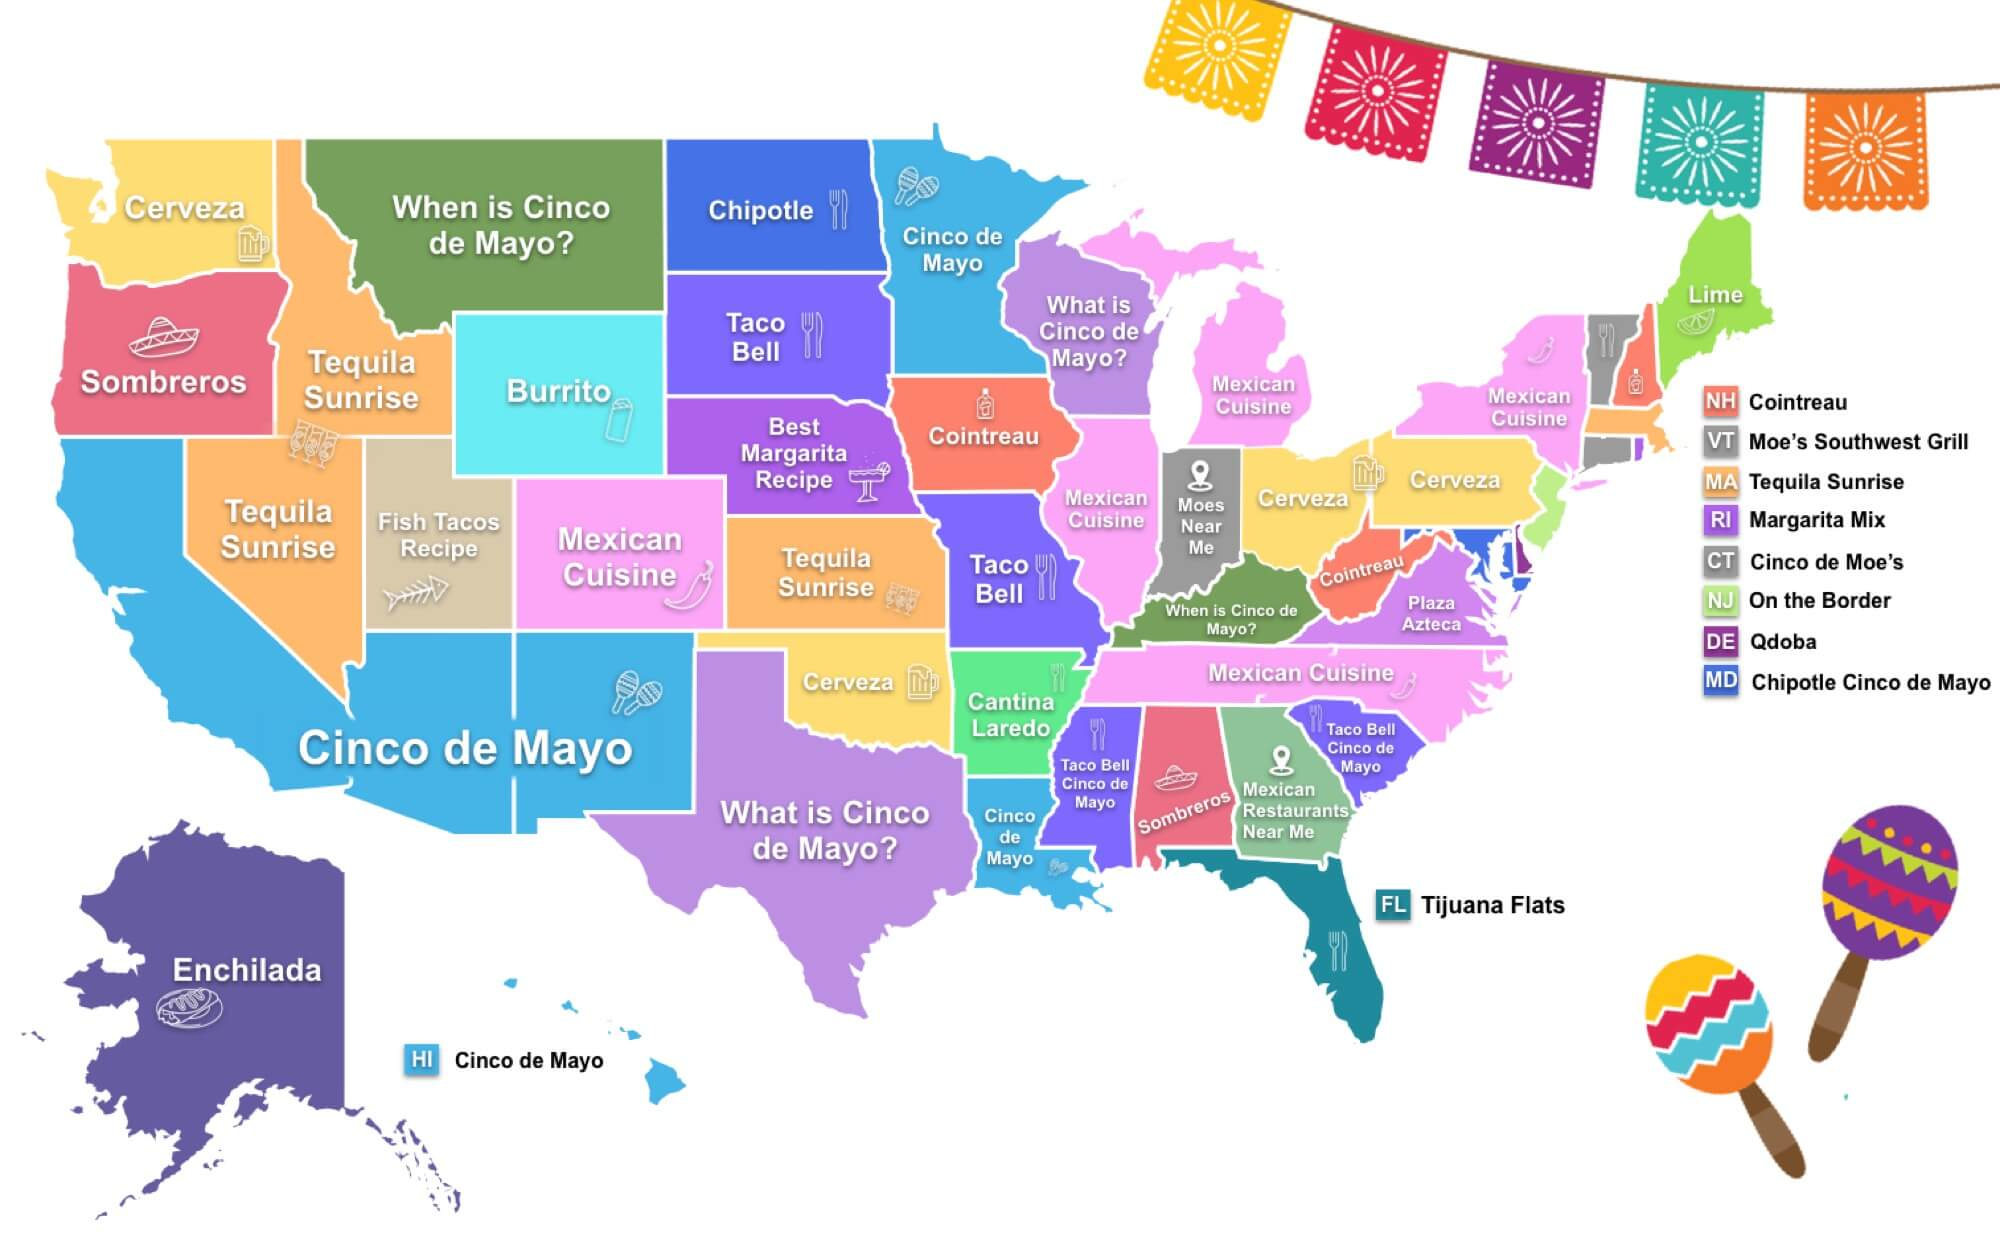 What Does Cinco de Mayo Mean to Your State? | CableTV.com Map Of Delaware And Surrounding States on most democratic states, map of ohio college locations, map of new york and surrounding areas, map of great lake states, map of delaware cities and towns, map of delaware and dc, map of delaware and pa, map of east malaysia, west virginia and surrounding states, map of delaware and baltimore, map of jay ny, kentucky map with surrounding states, arizona surrounding states, map of delaware and virginia, map of delaware and north carolina, map of del, map of new jersey and delaware, map of baltimore ohio, map of california with scale, map of great lakes and surrounding area,